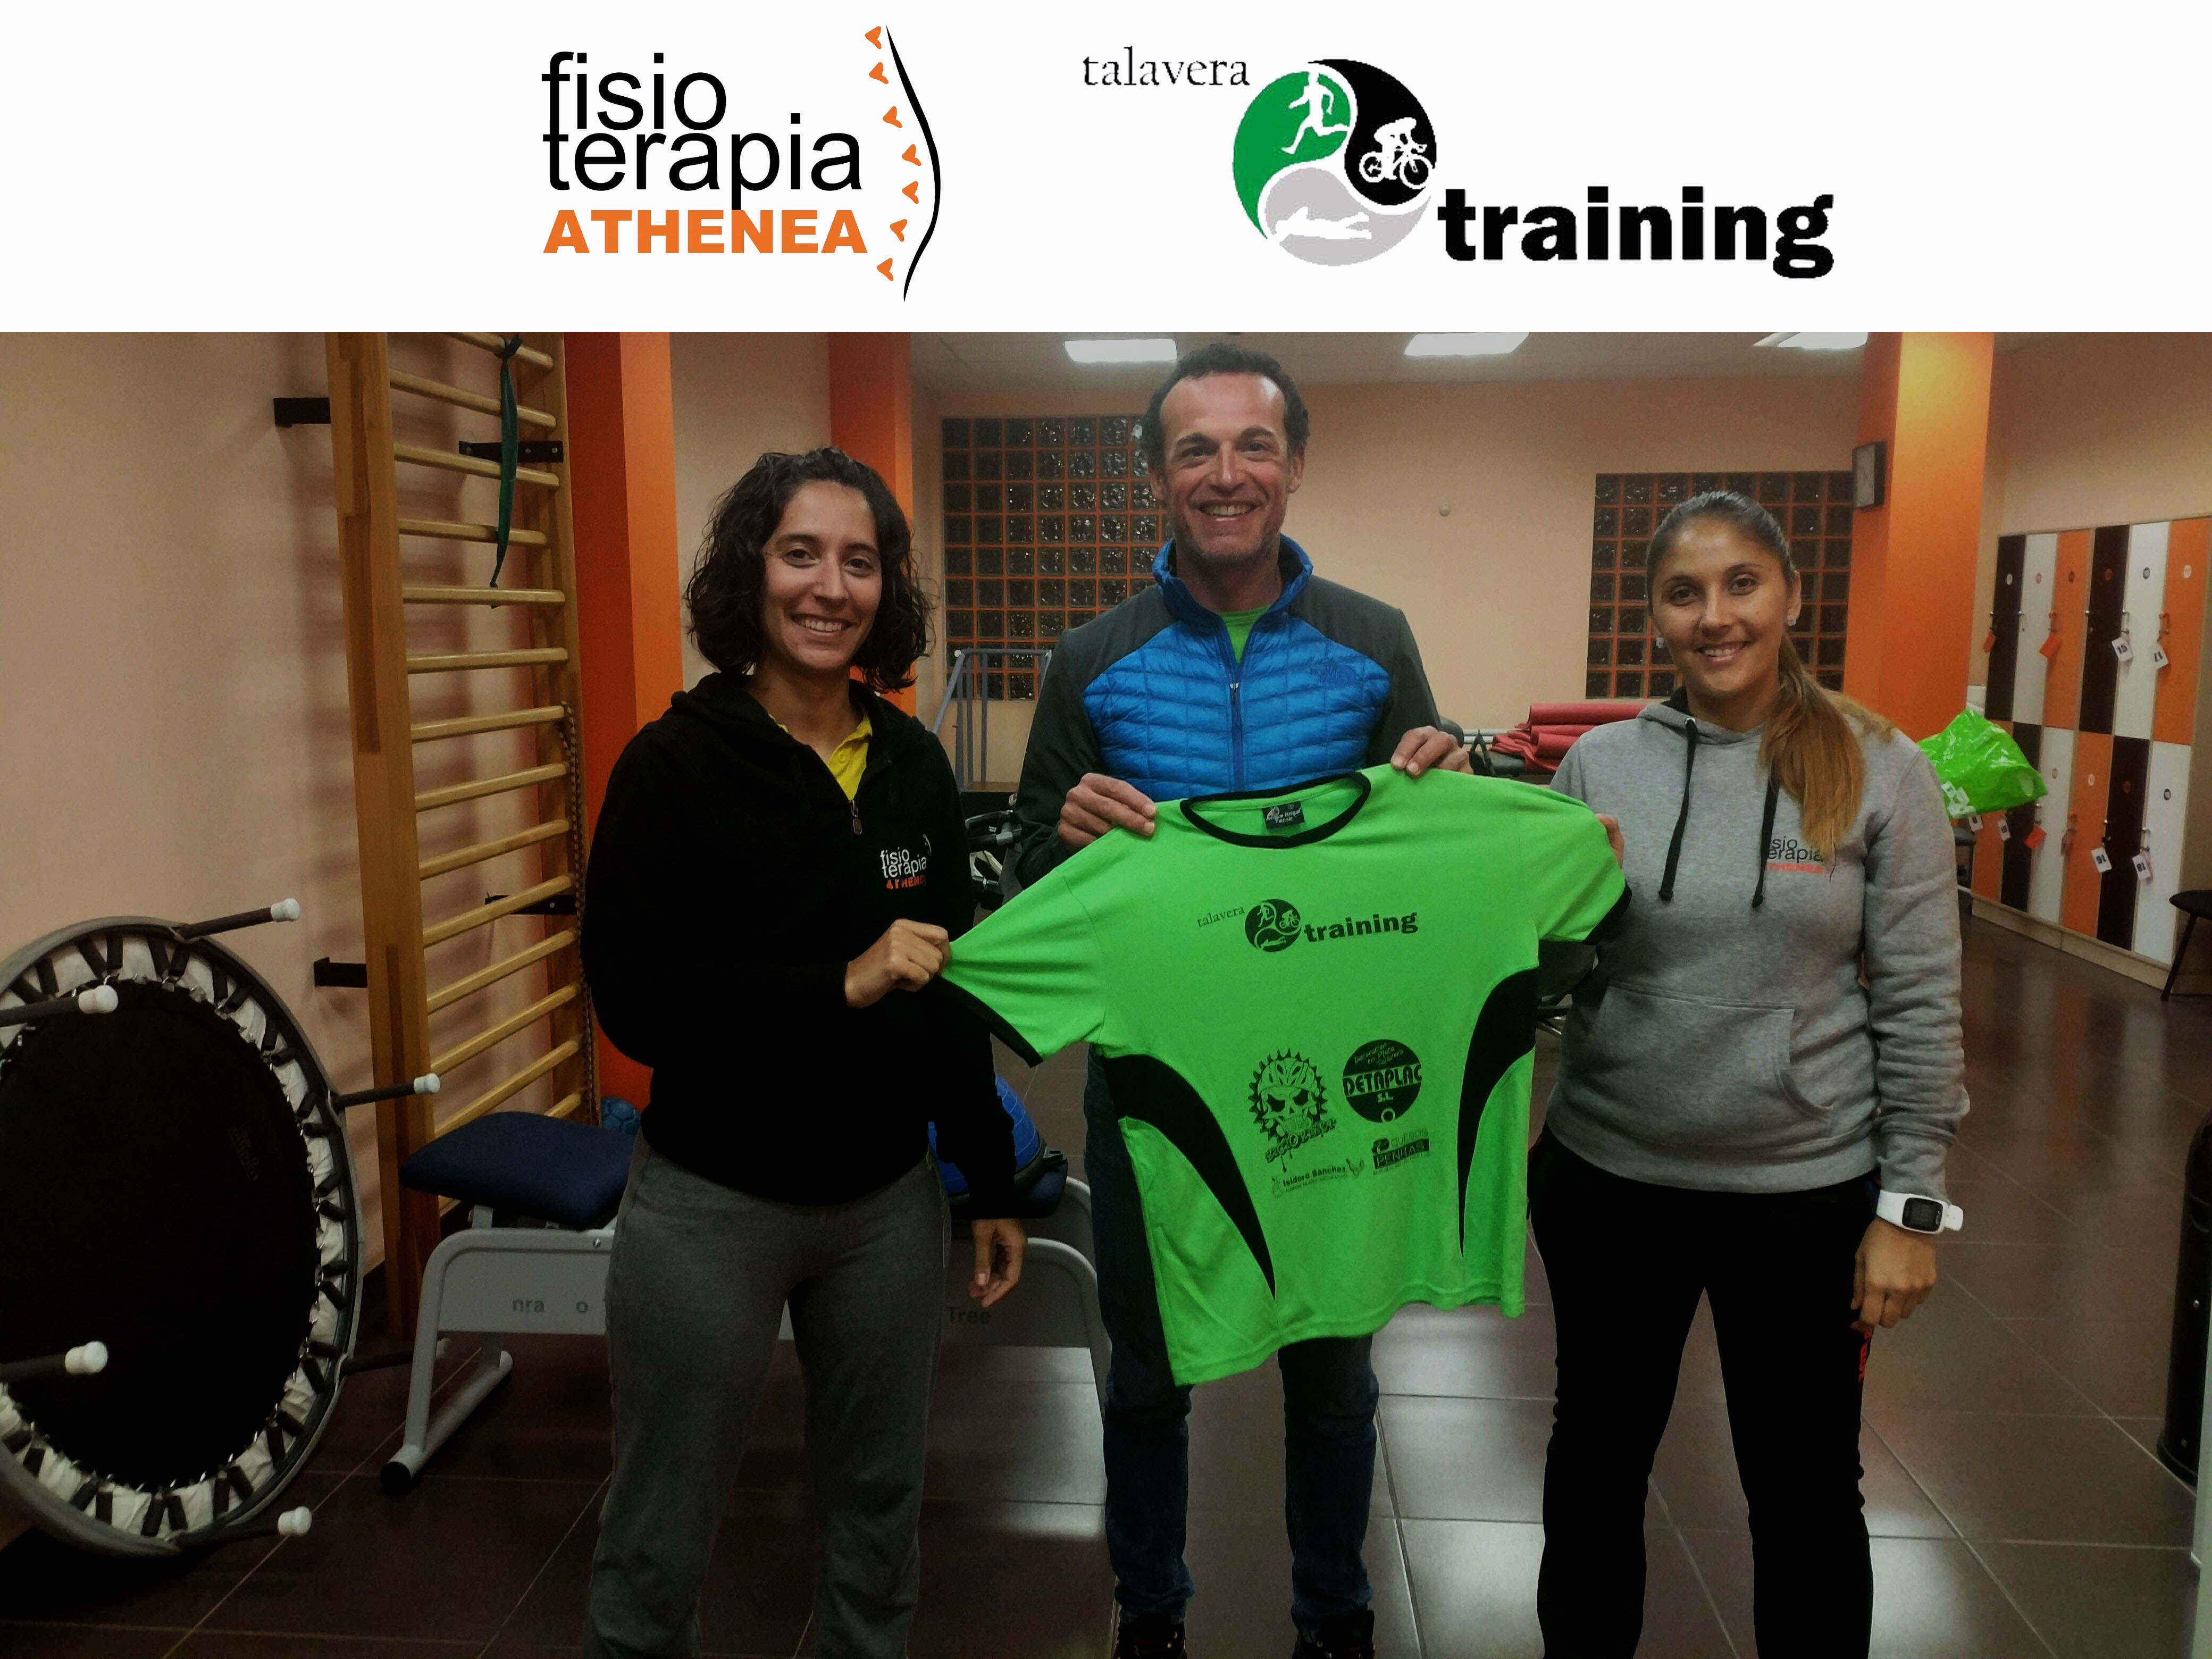 club talavera training